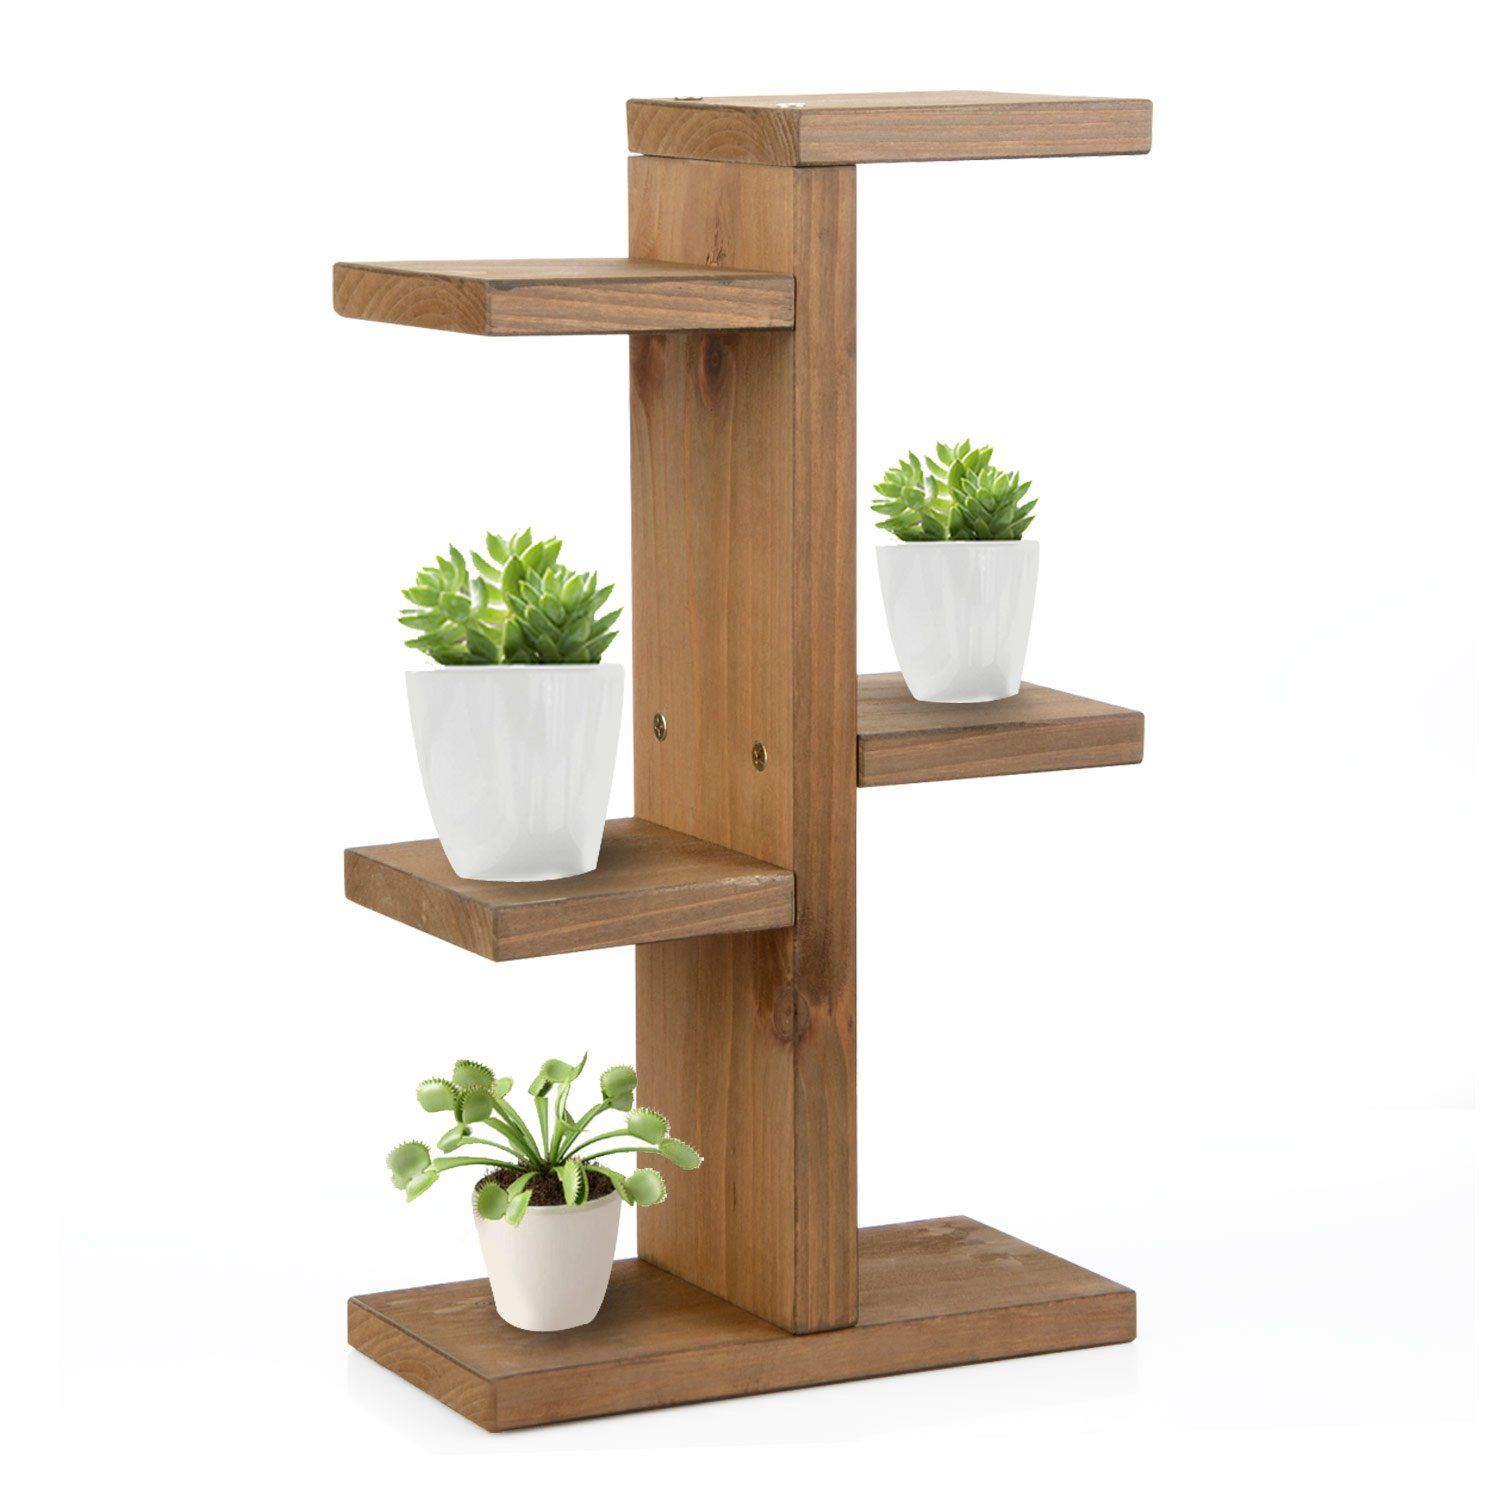 Mini Plant Stand Uhbgt Wooden Diy Tabletop Flower Stand Small Stool Display Stand Wood Tiered S Wooden Plant Stands Indoor Wooden Plant Stands Plant Shelves